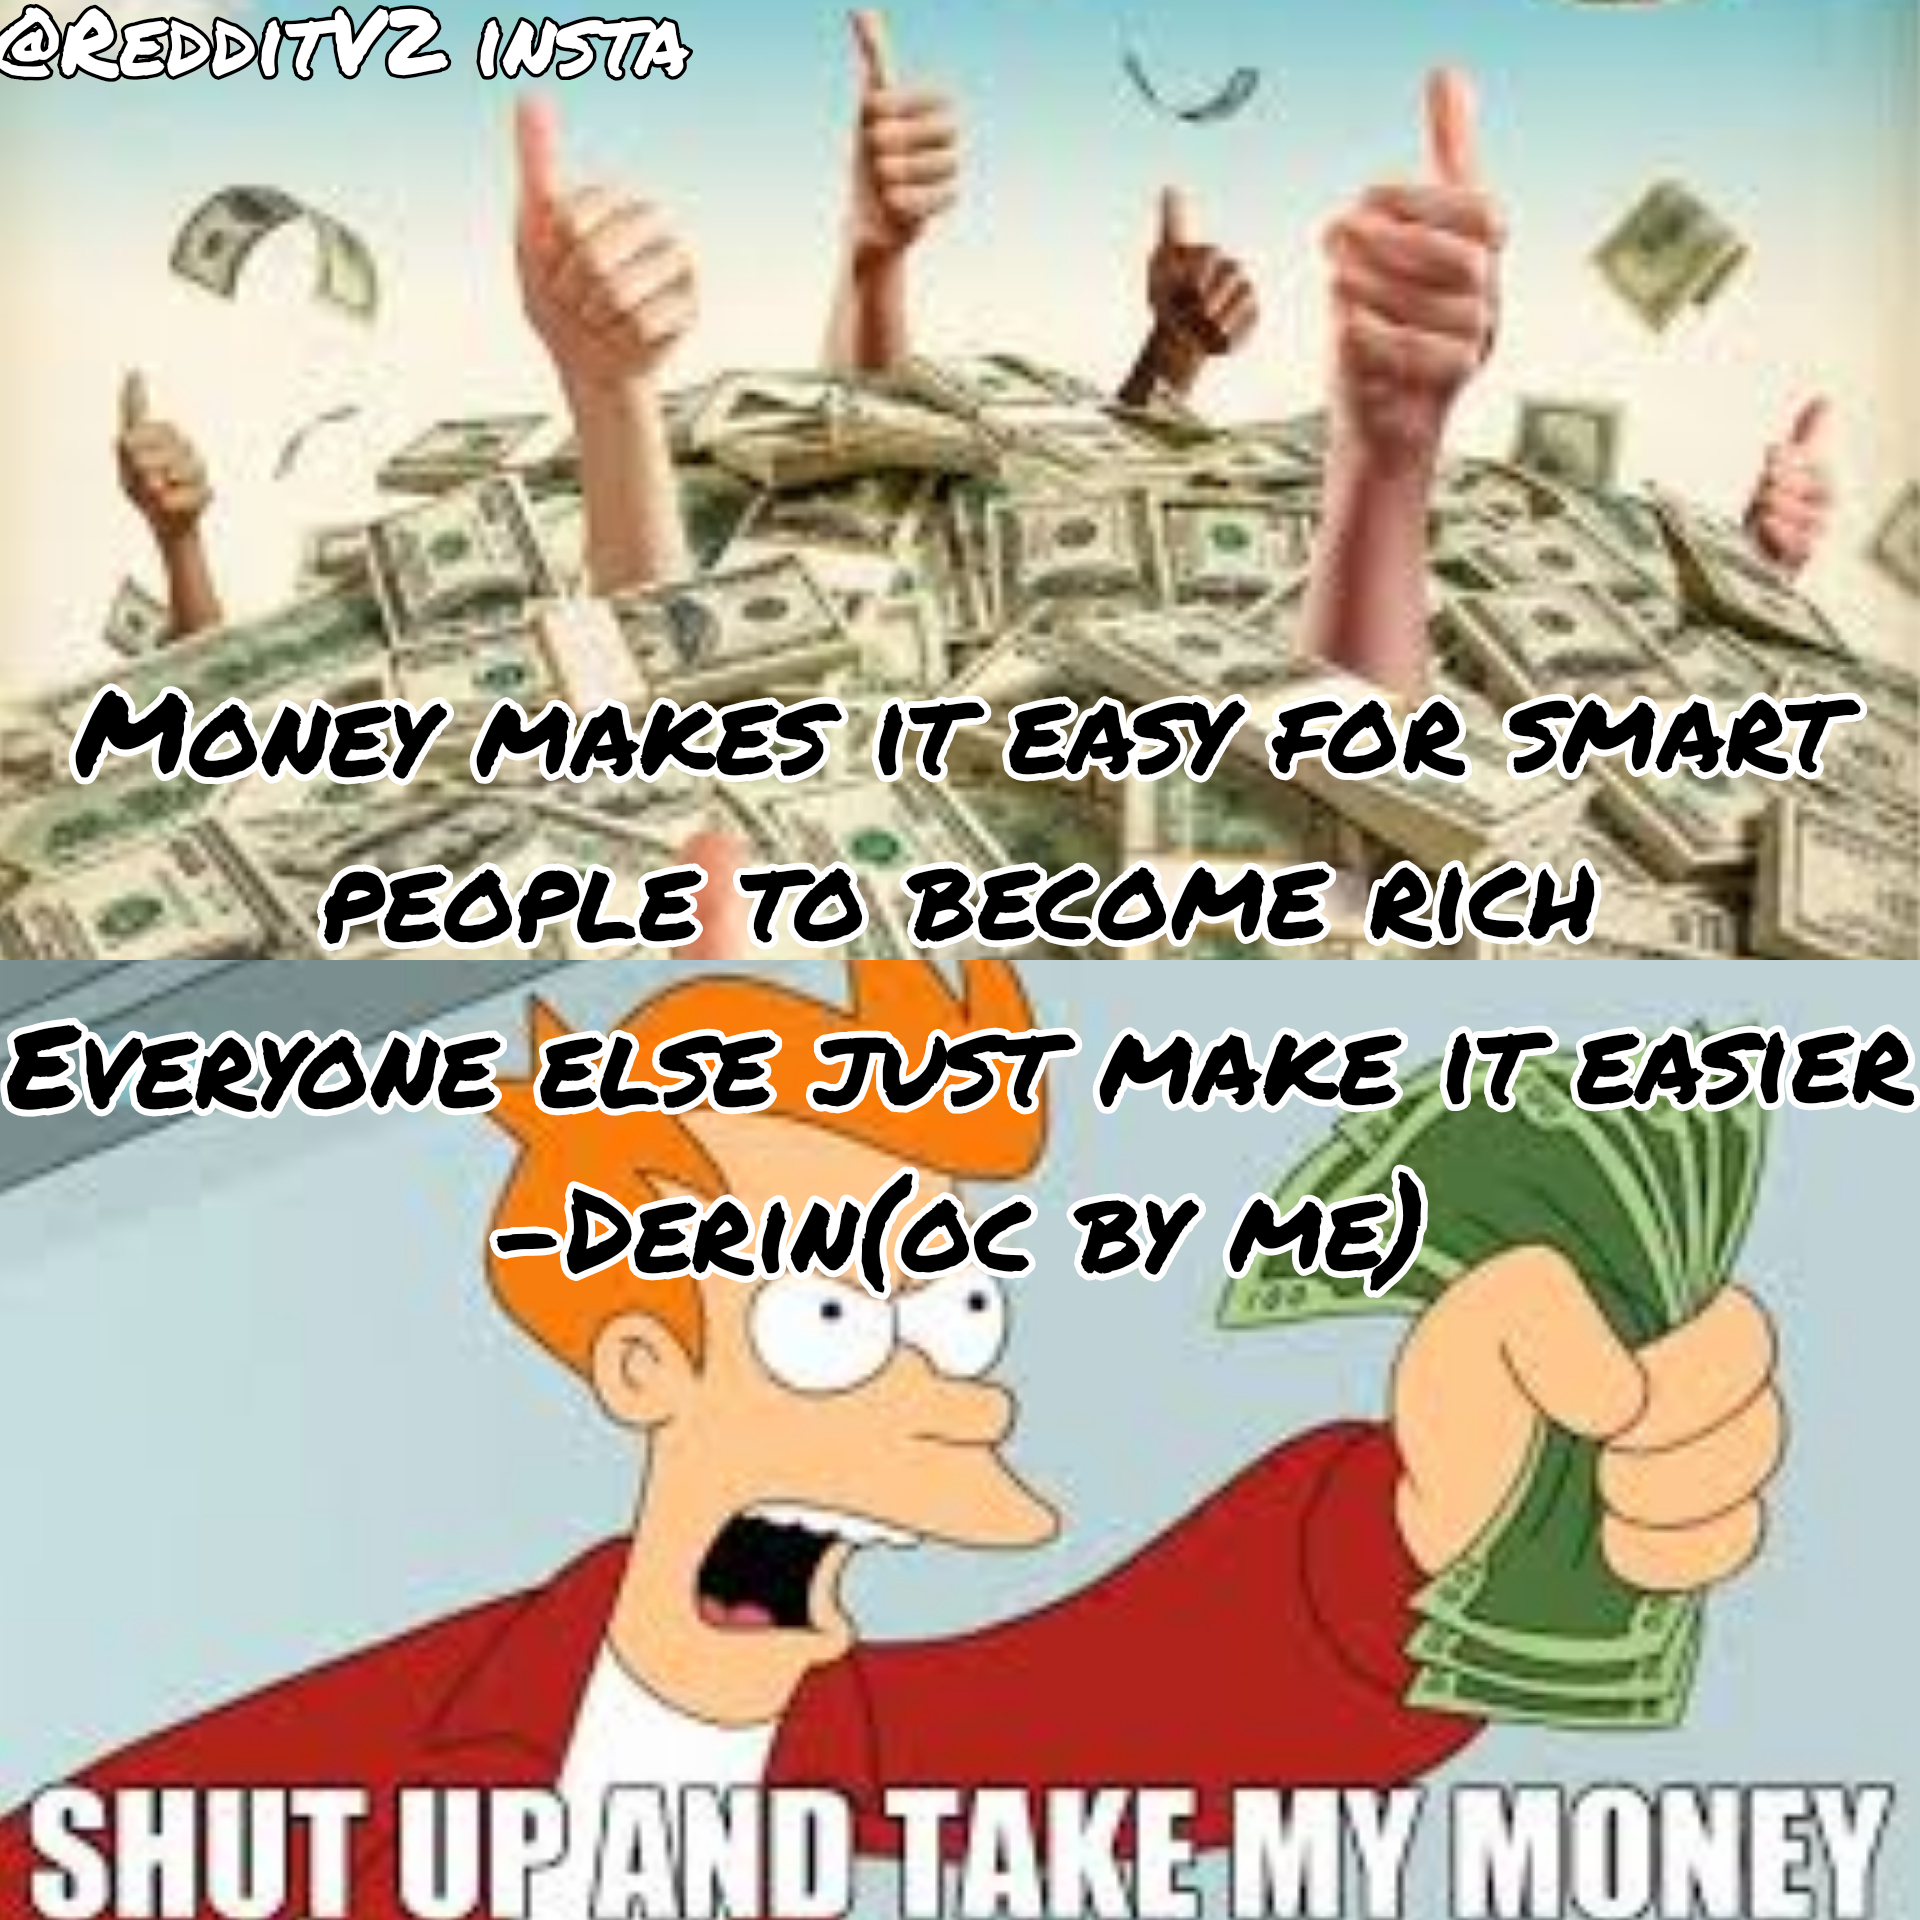 """Money makes it easy for smart people to become rich, everyone else just makes it easier"" by derin [OC] [1920X1920]"